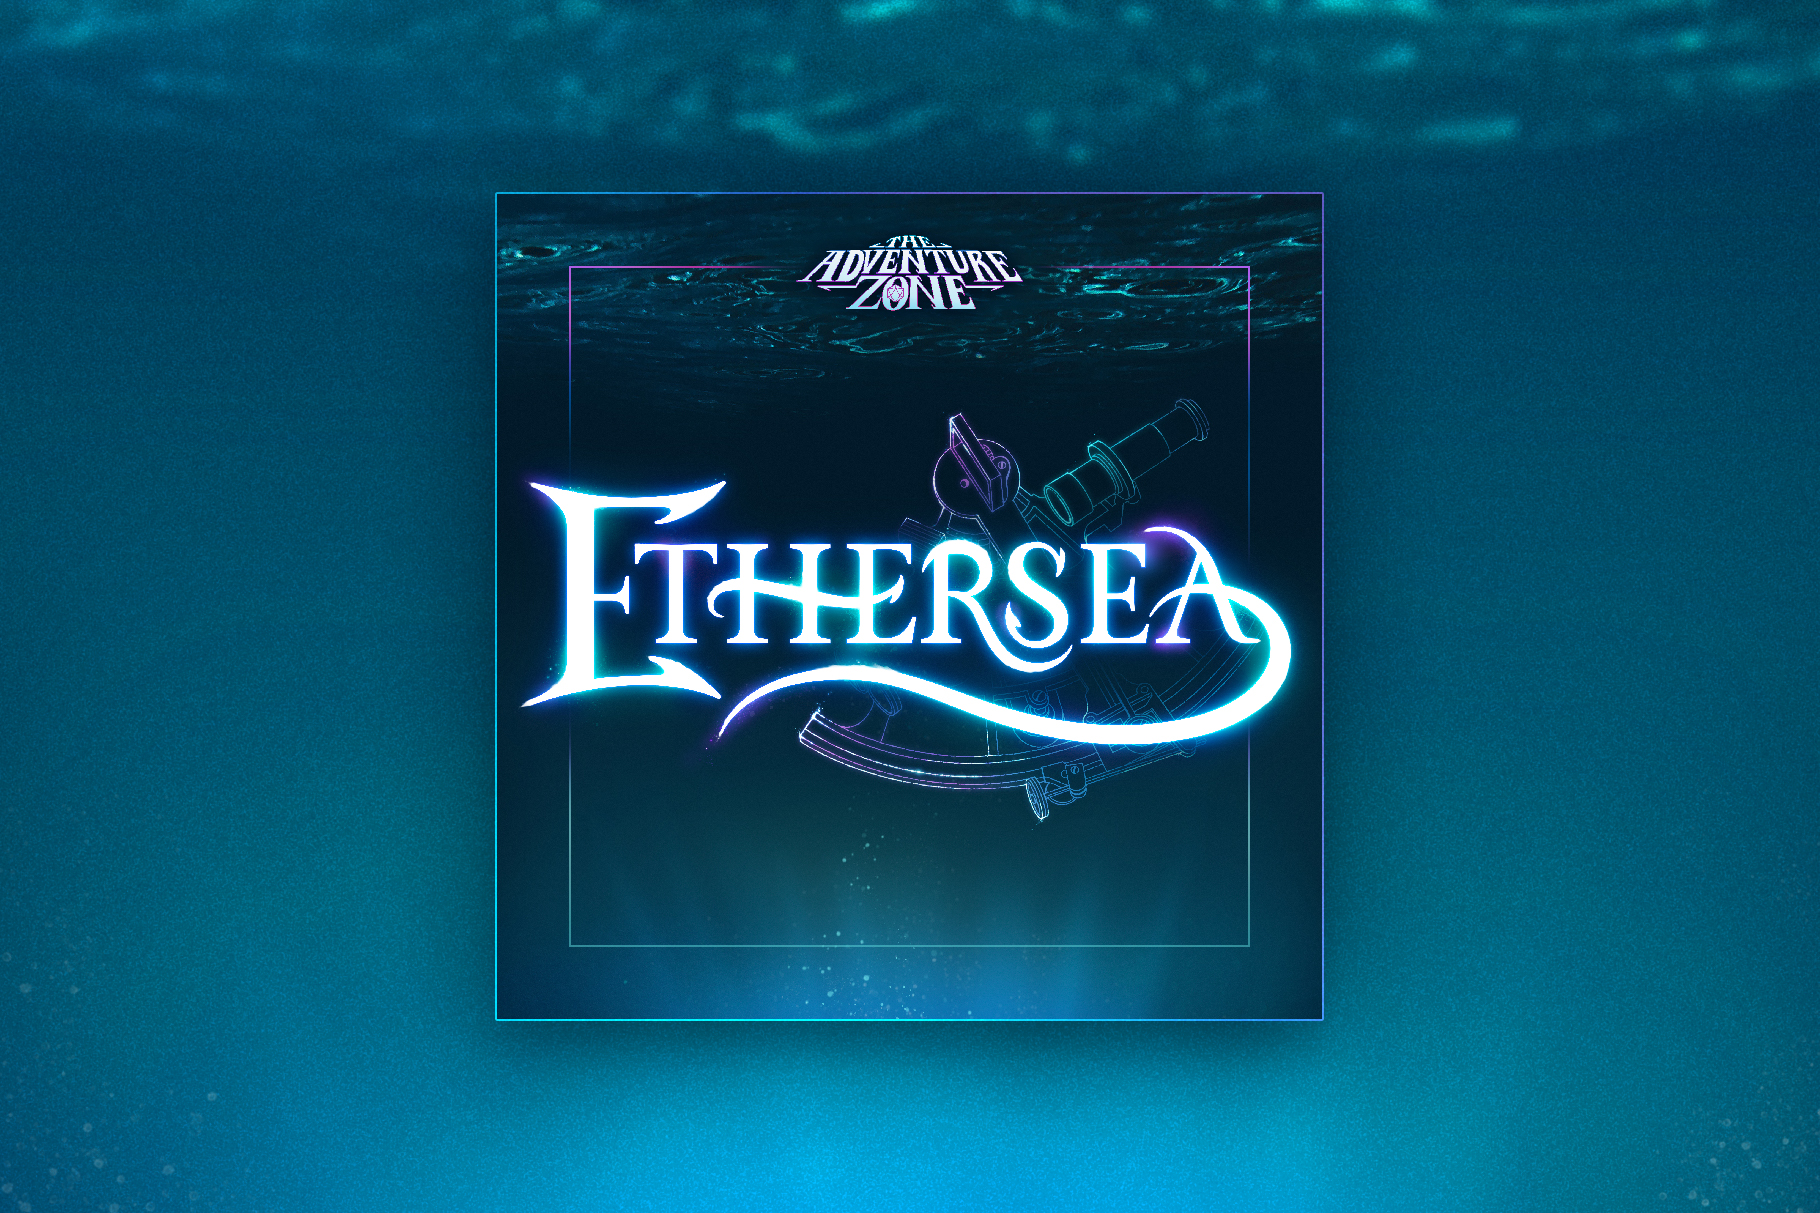 """The Adventure Zone Ethersea cover art is shown on a background of water. The cover features The Adventure Zone logo at the top, and the word """"Ethersea"""" in the center, with an illustrated sextant behind it."""